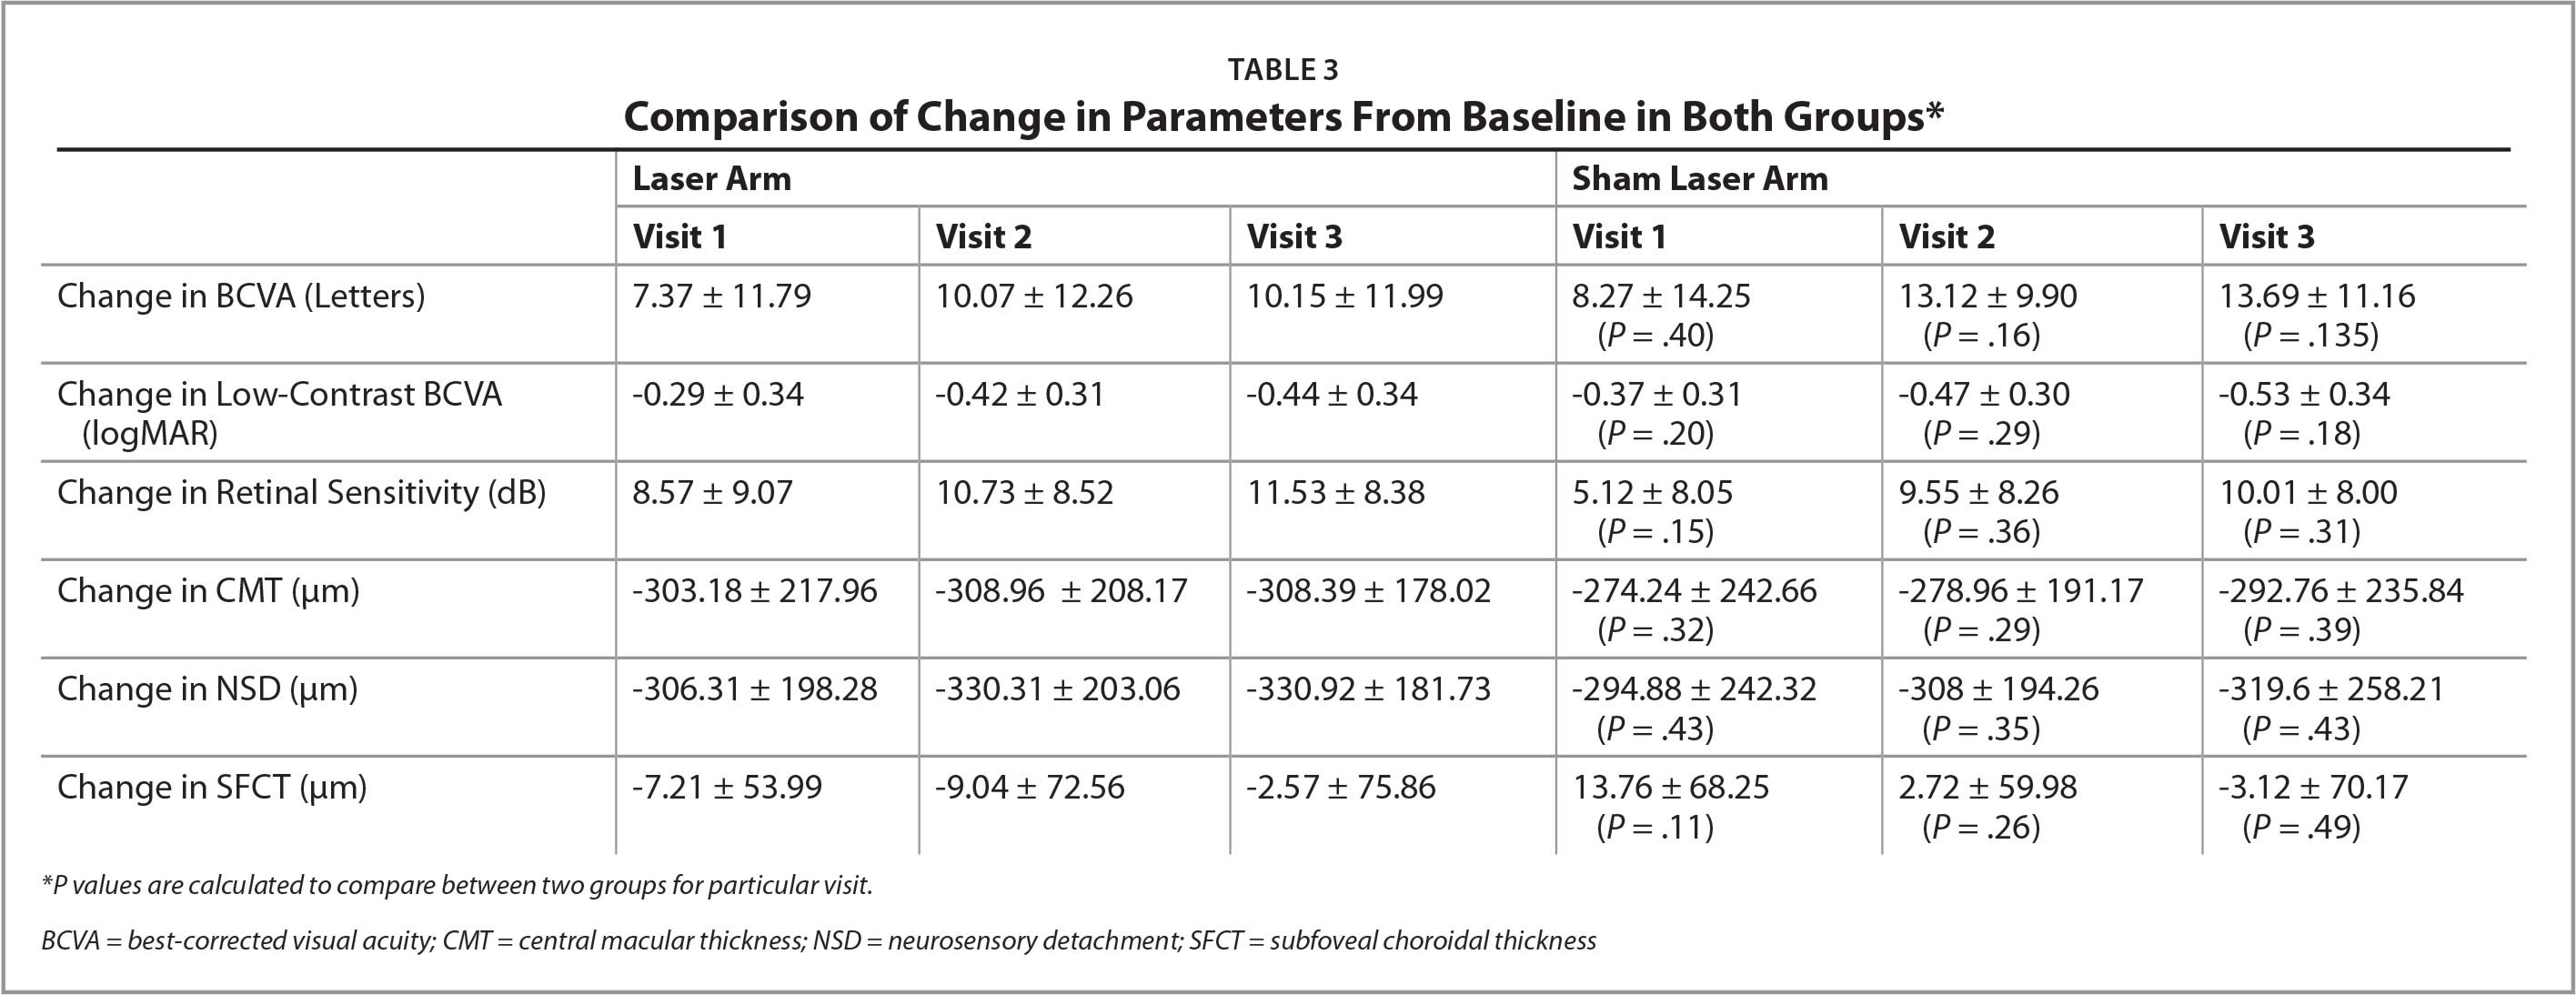 Comparison of Change in Parameters From Baseline in Both Groups*